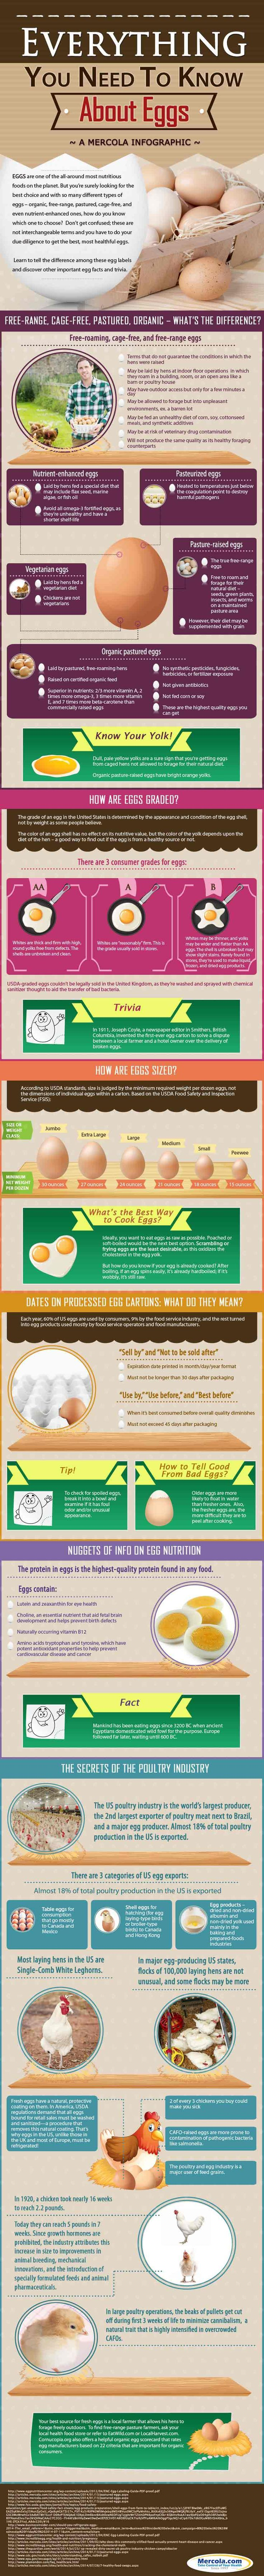 Discover important egg nutrition facts in this infographic, plus other useful tips in choosing safe, high-quality and nutritious eggs for your meals. http://www.mercola.com/infographics/egg-nutrition-facts.htm